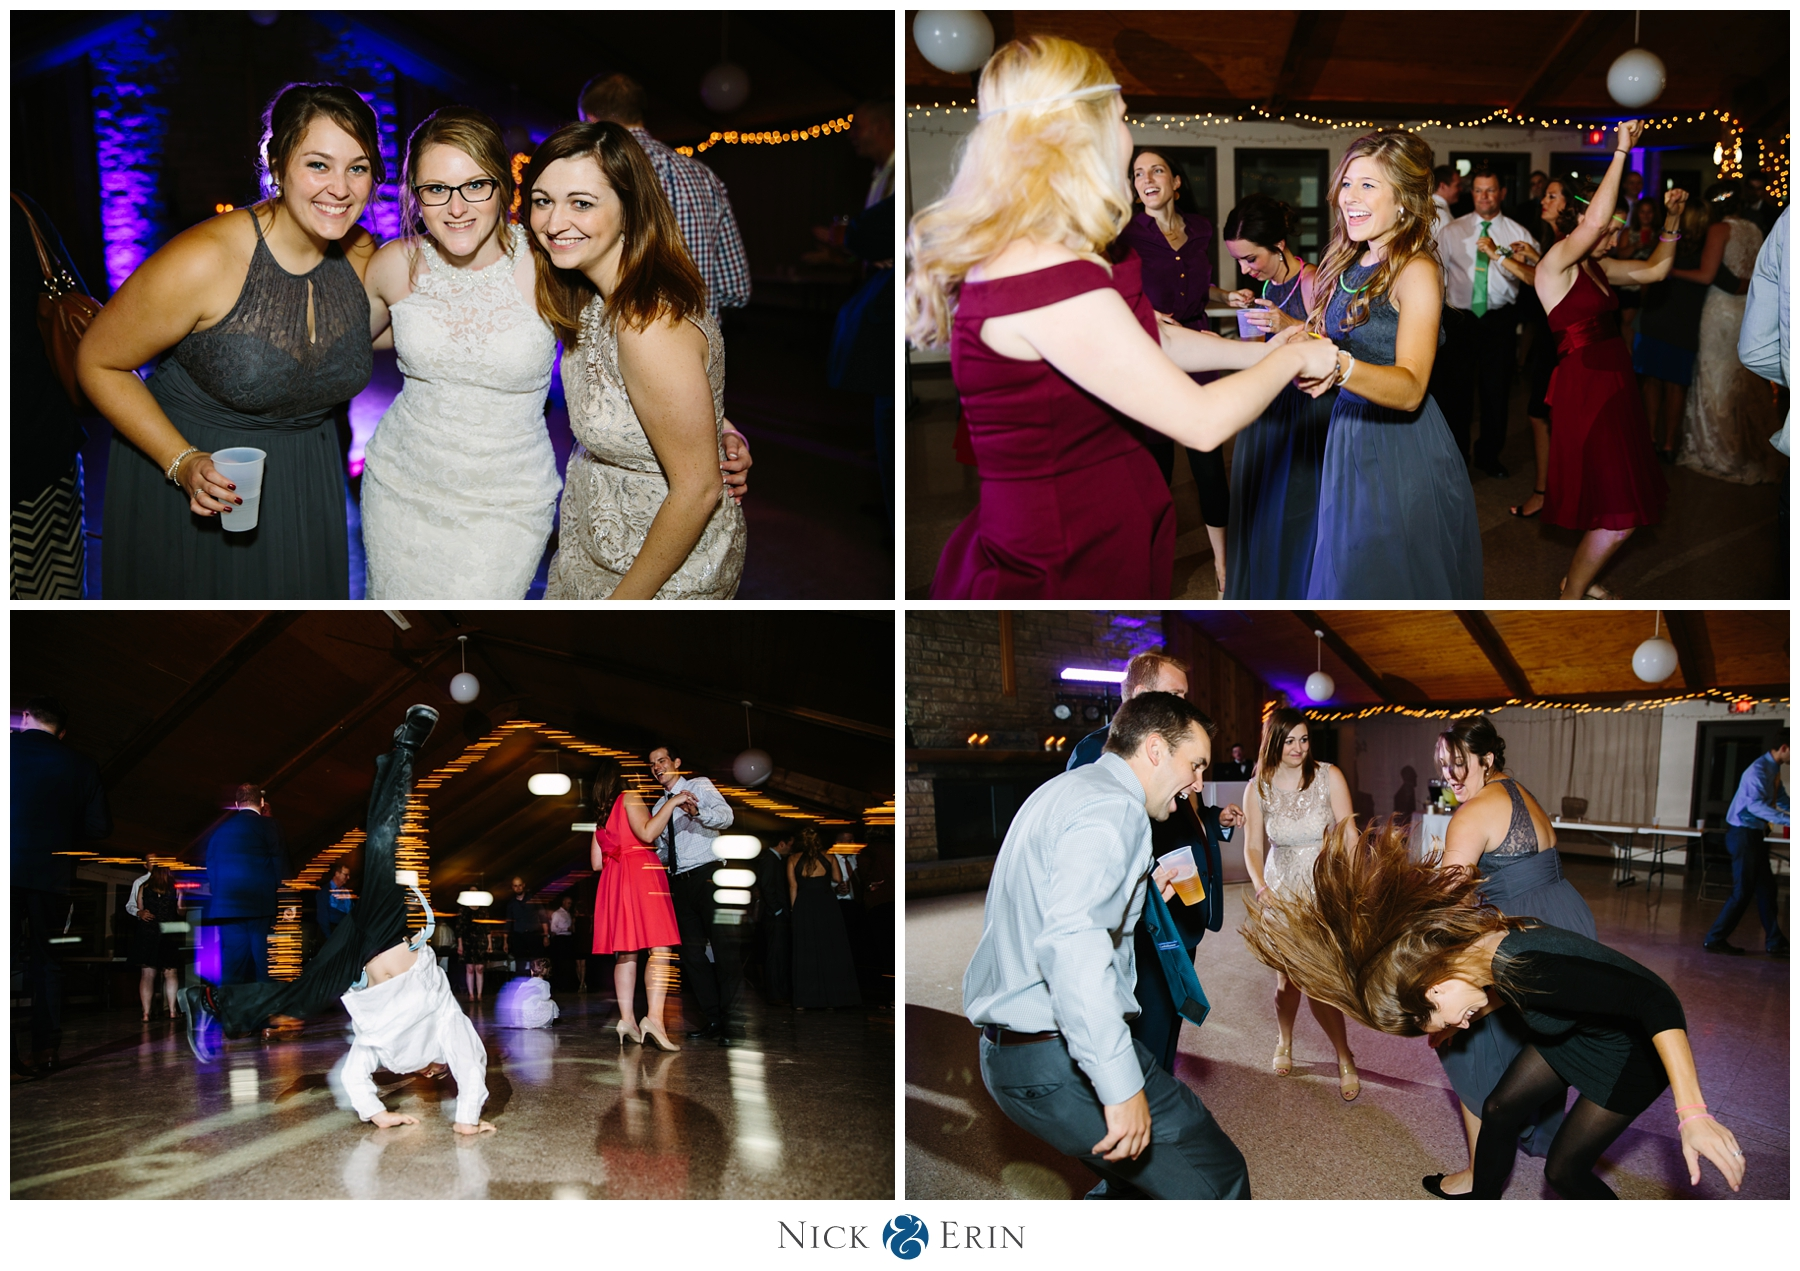 donner_photography_iowa-wedding_katie-chris_0058